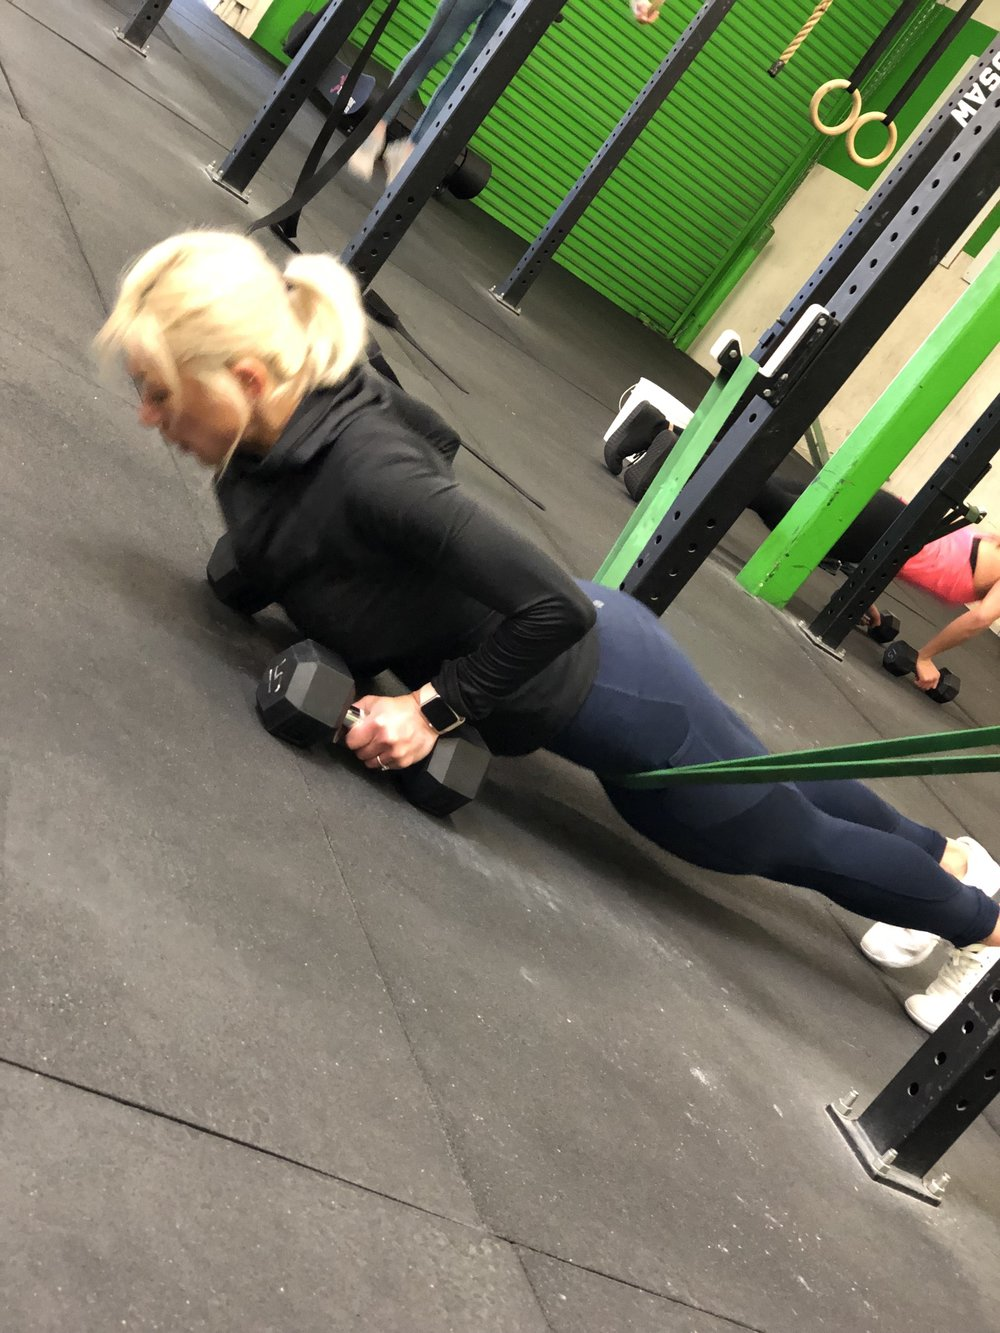 Christina working on her pressing strength